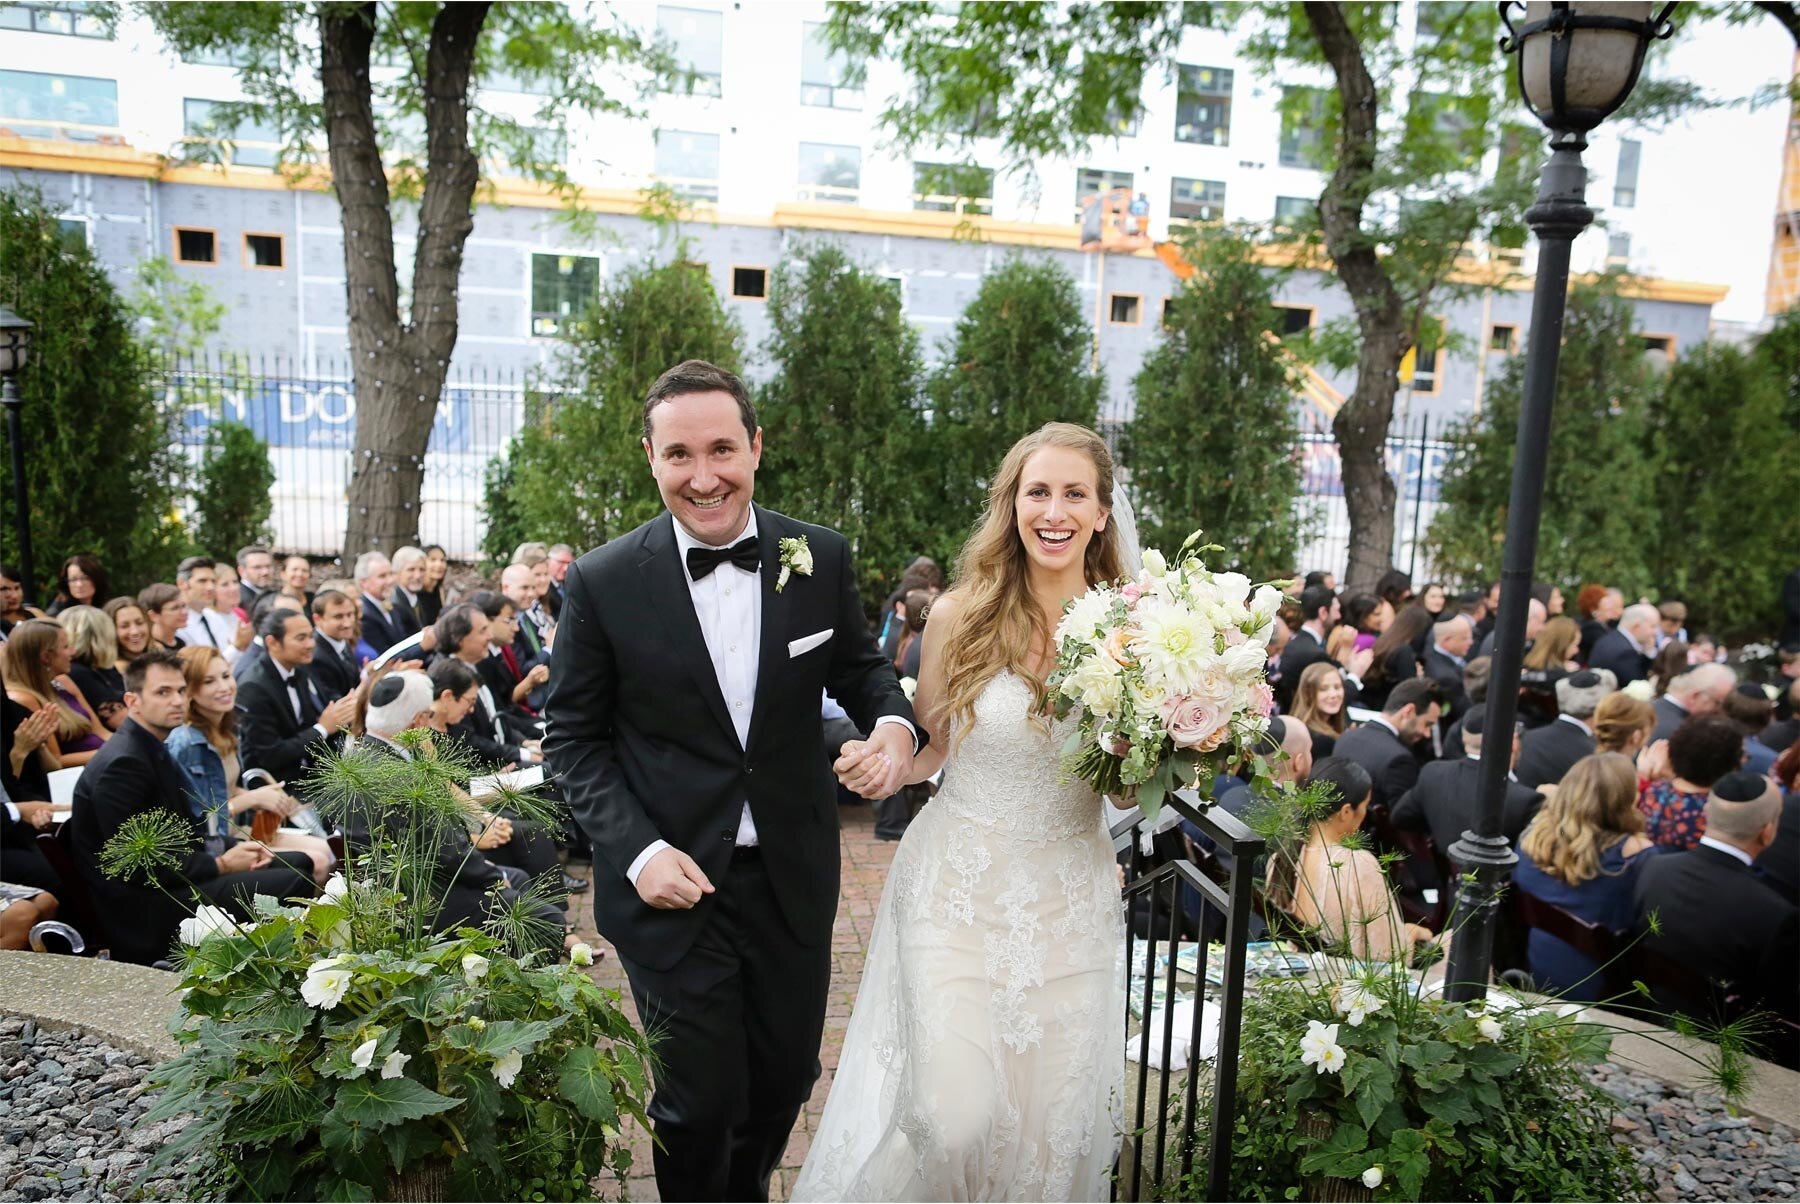 15-Minnesota-Wedding-Vick-Photography-Minneapolis-Event-Centers-Outdoor-Courtyard-Ceremony-Bride-Groom-Amy-and-Avi.jpg